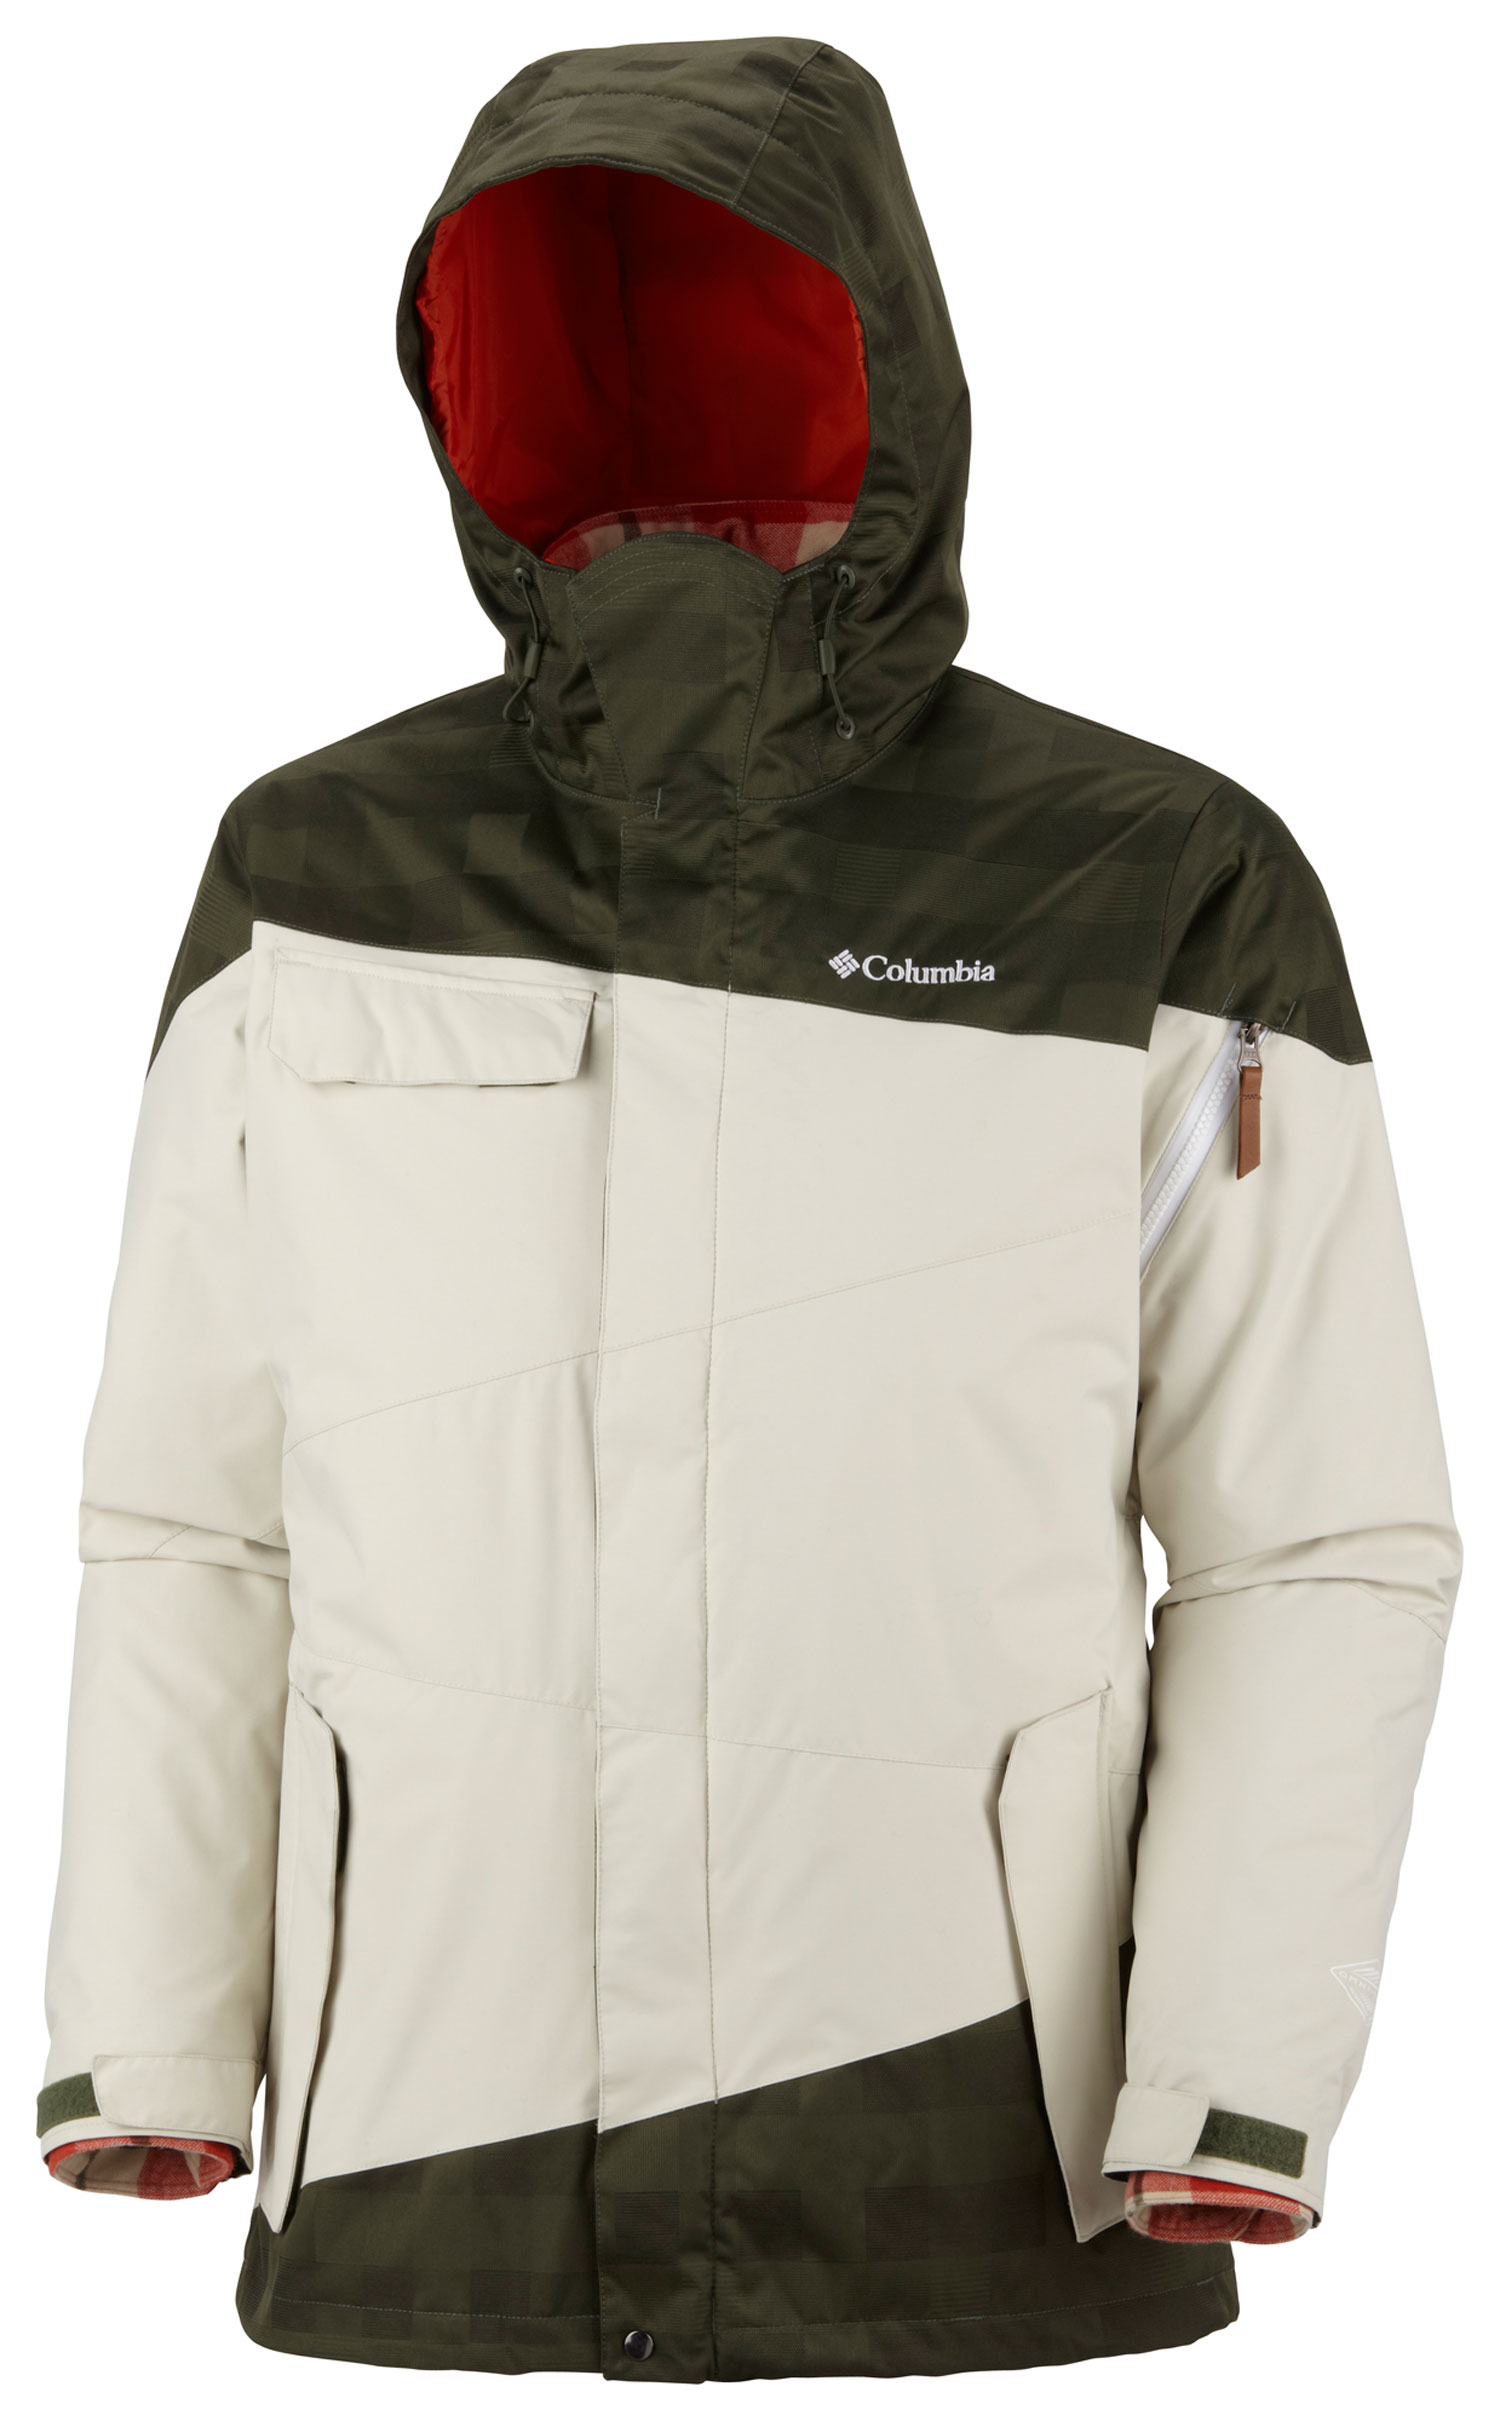 Ski Key Features of the Columbia Hells Mountain Interchange Ski Jacket: FABRIC Shell: 100% polyester Lumberjack Plaid. 100% nylon Legacy Twill. Lining: 100% nylon 210T taffeta. Liner: 90% acrylic/10% wool. Lining: 100% polyester taffeta. Insulation: 60% down/40% feather down. FIT Modern Classic Omni-Tech™ waterproof/breathable critically seam sealed Zip-in Interchange System Down fill liner Attached, adjustable storm hood Underarm venting Drawcord adjustable hem Adjustable, snap back powder skirt Jacket connector tab Media and goggle pocket Drop tail Nose guard - $174.95